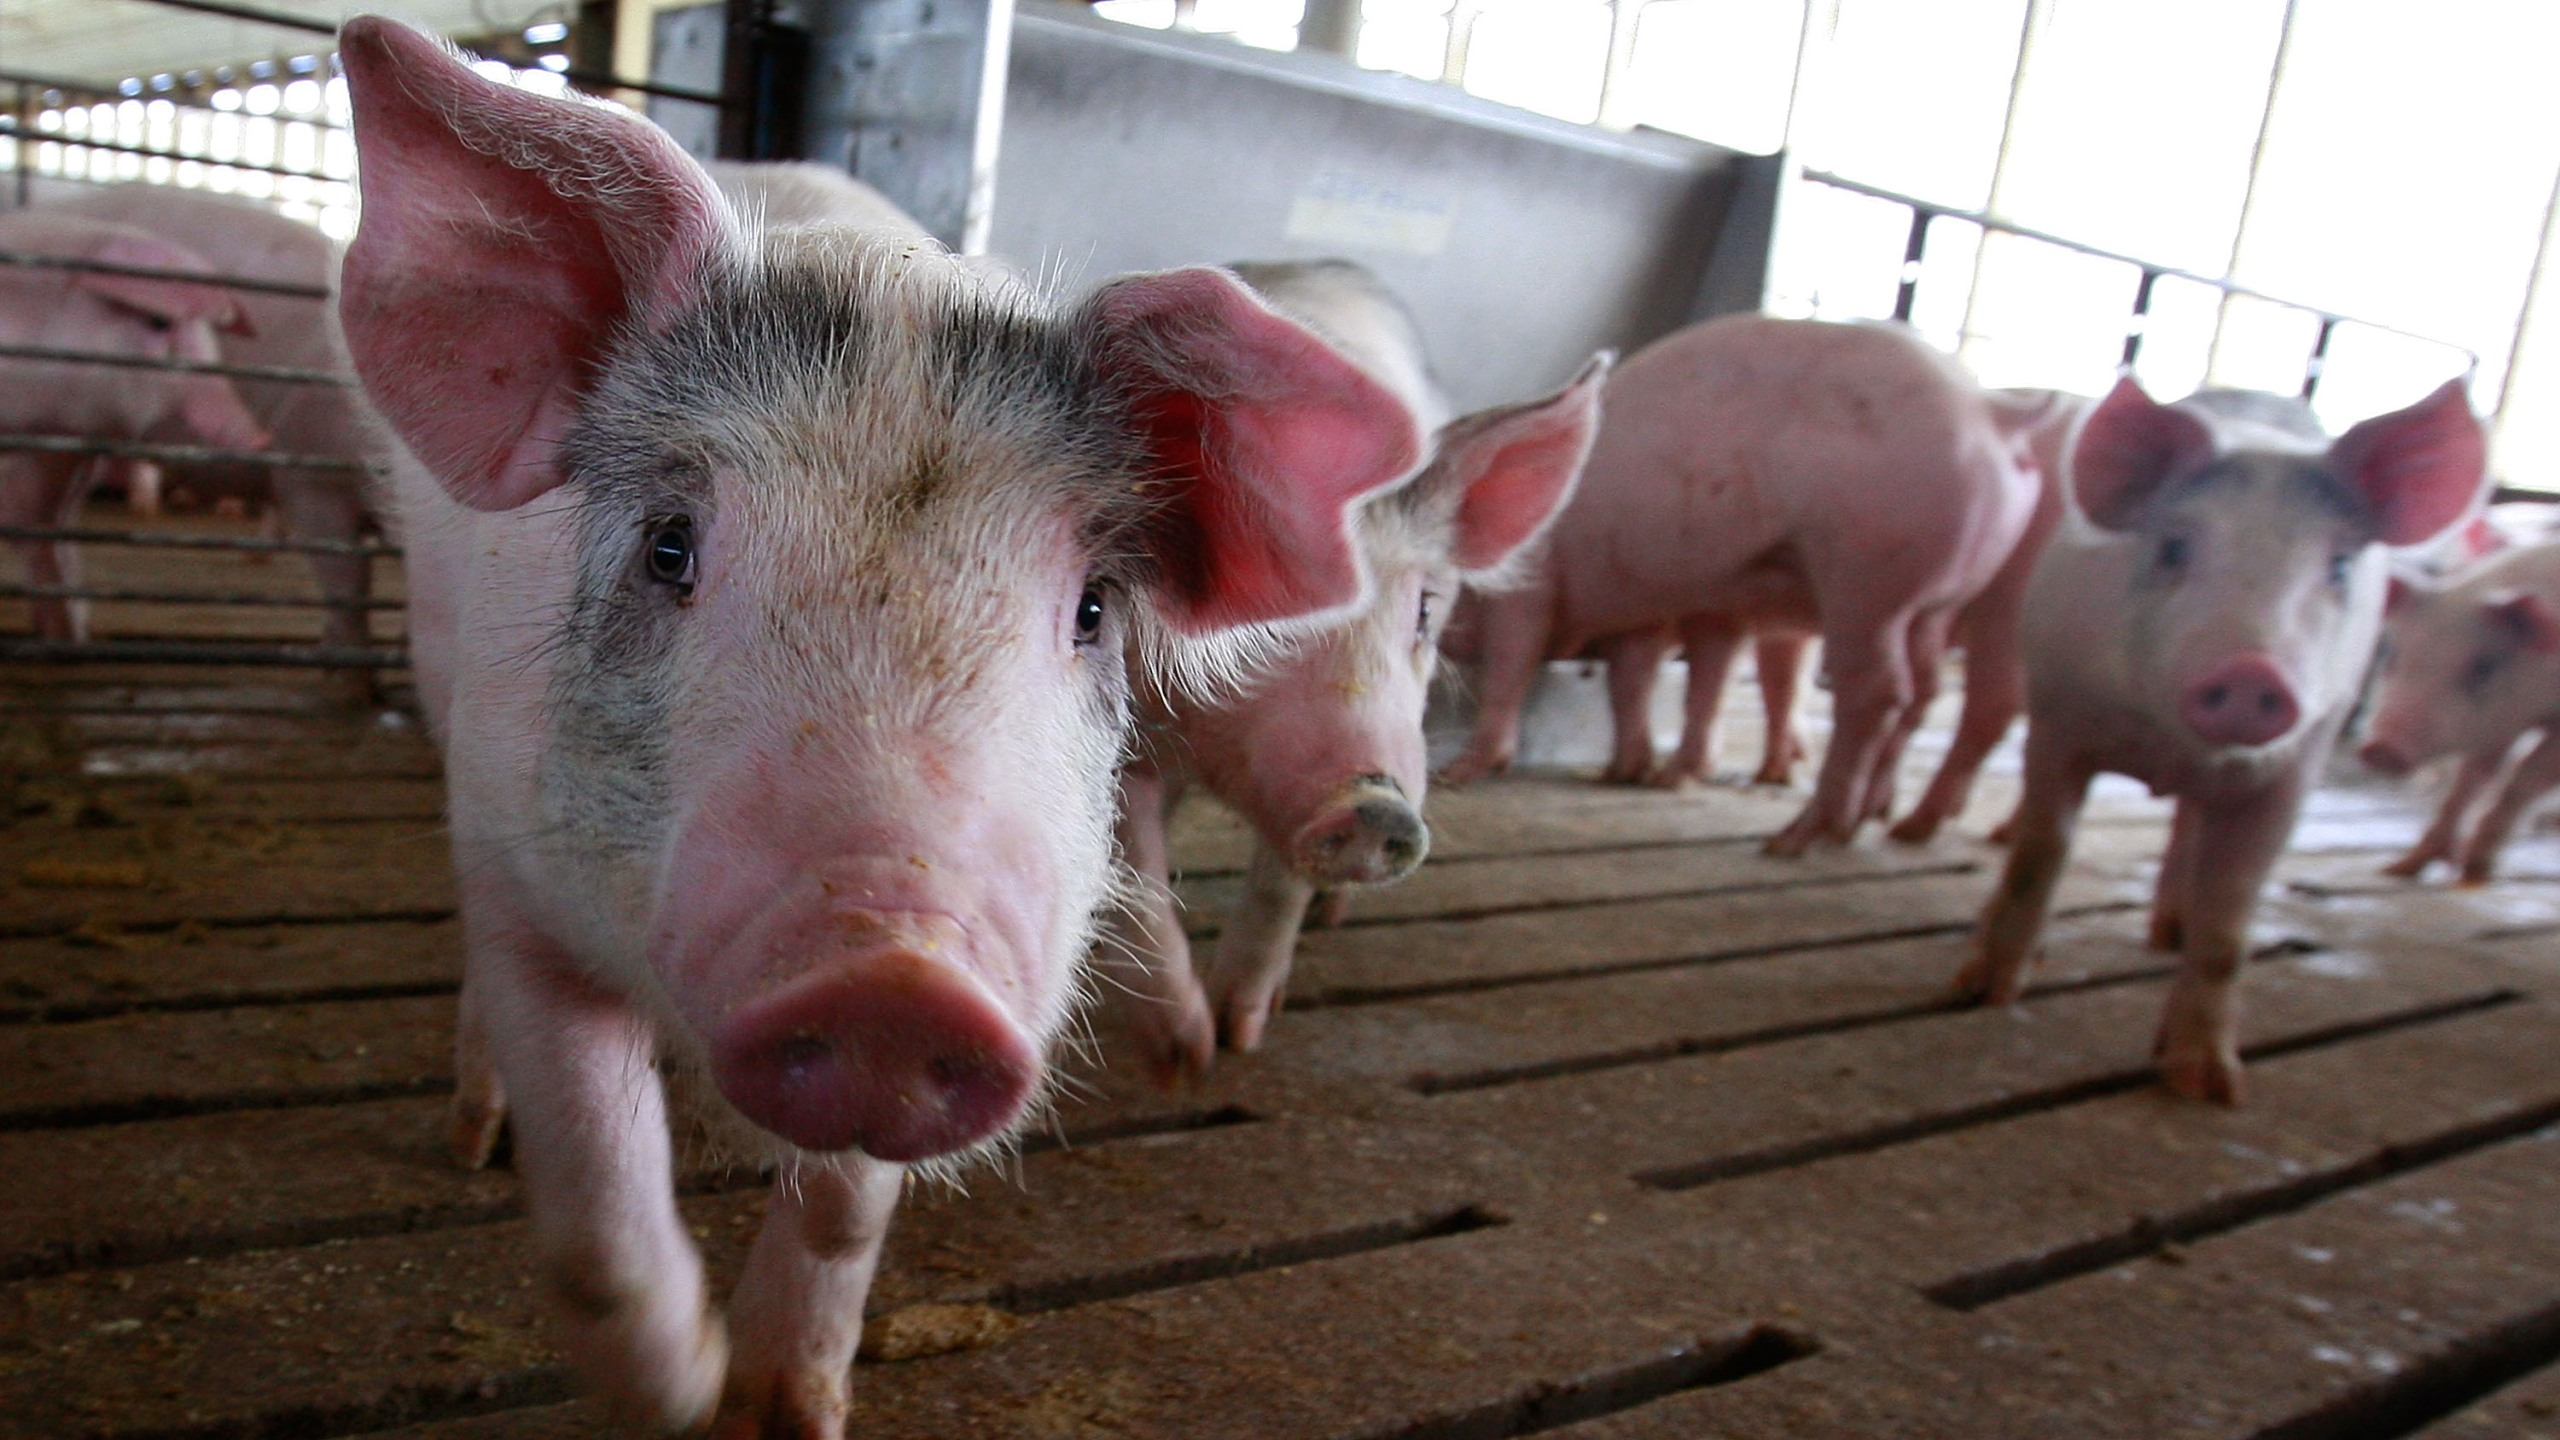 Pigs are seen in this file photo. (Scott Olson/Getty Images)